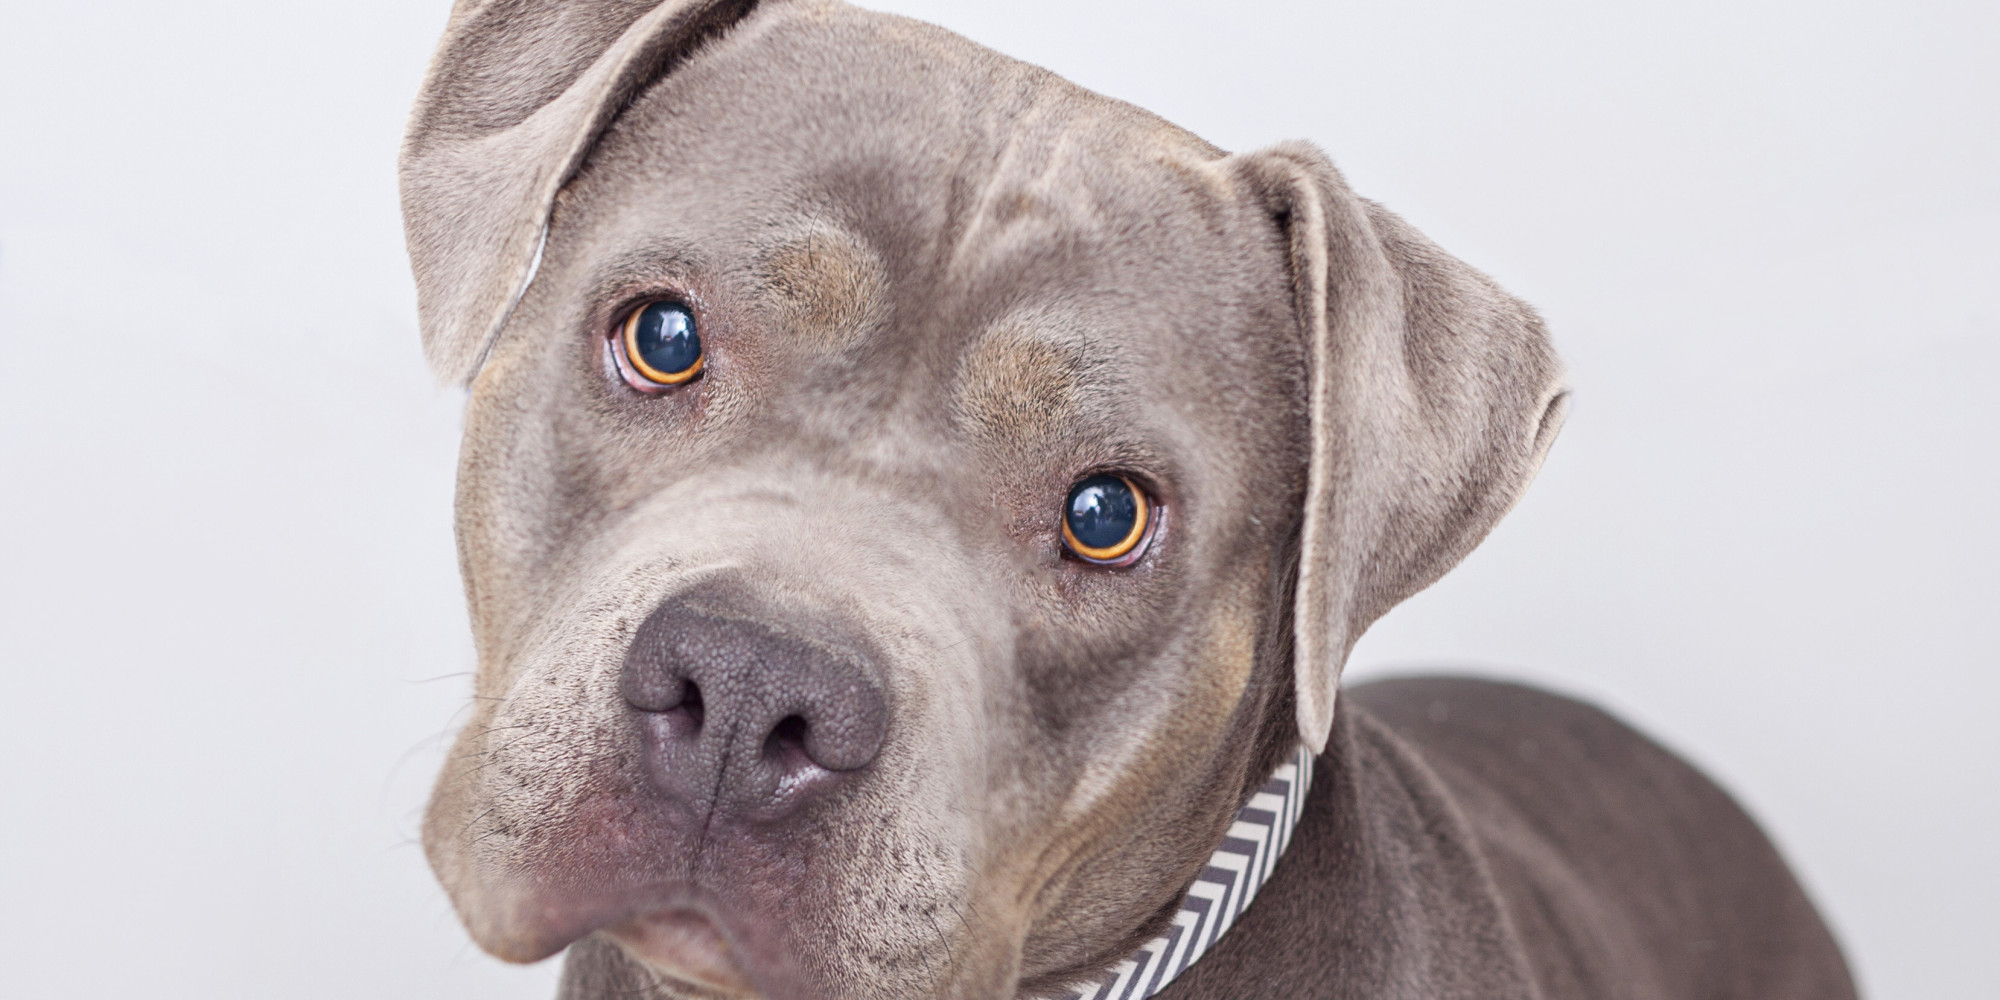 Popular Pitbull Anime Adorable Dog - pit_bull_13  Image_10712  .jpg